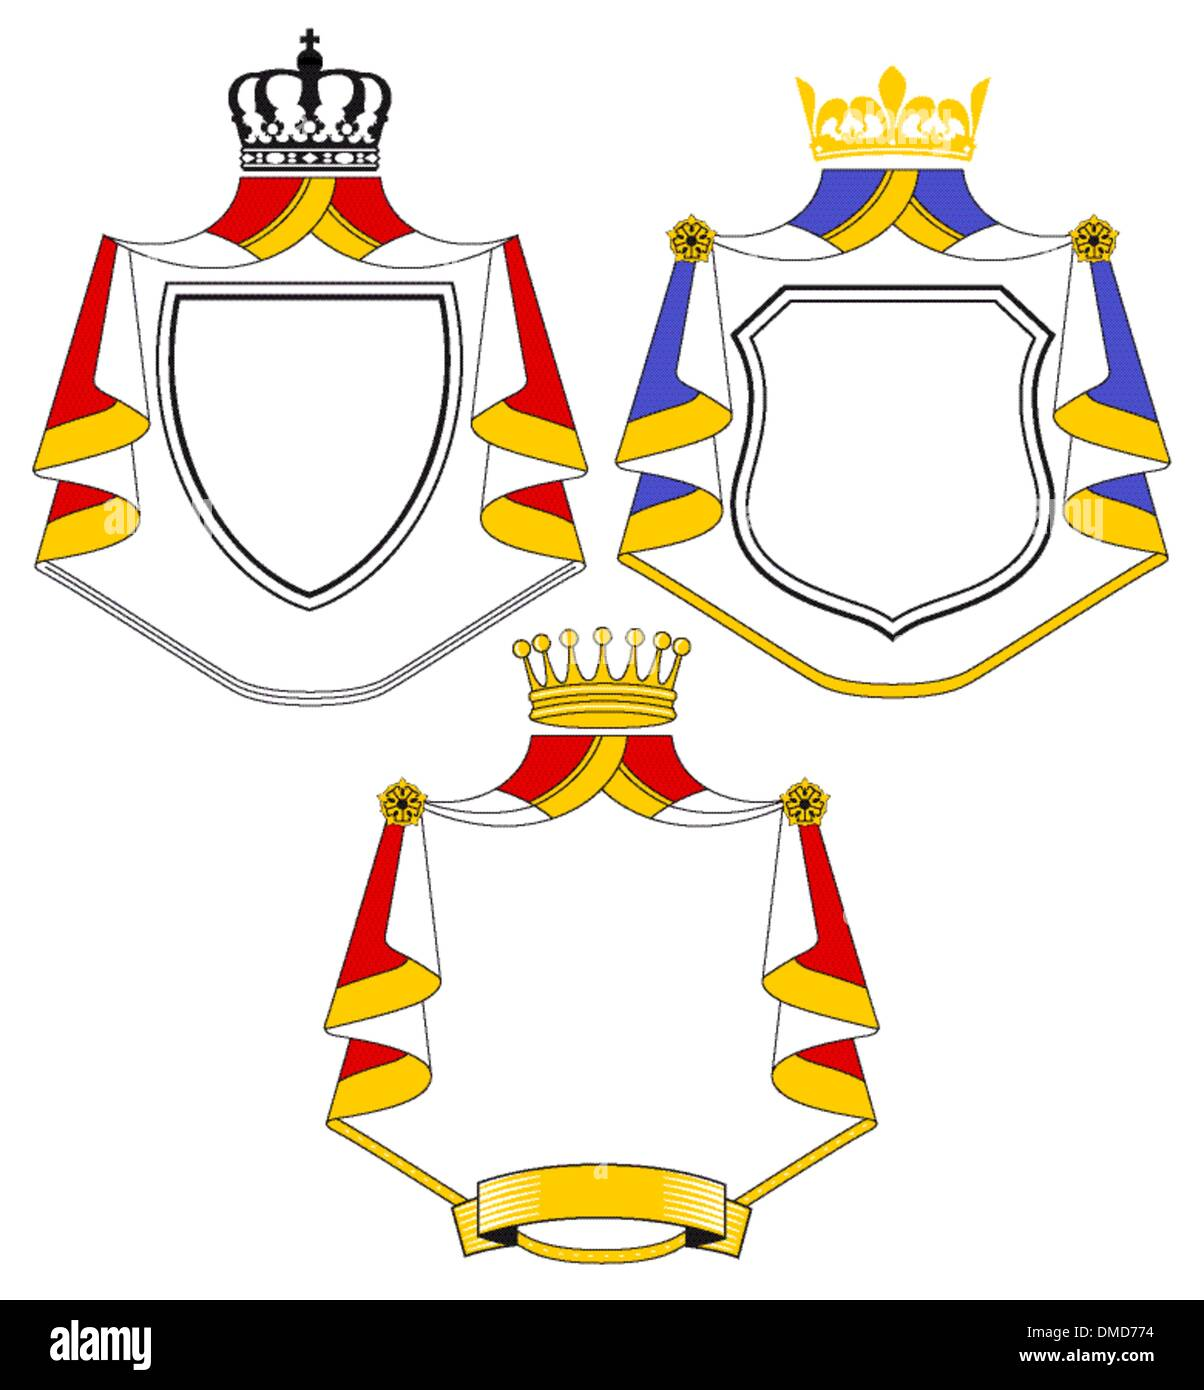 Crest with coat - Stock Image